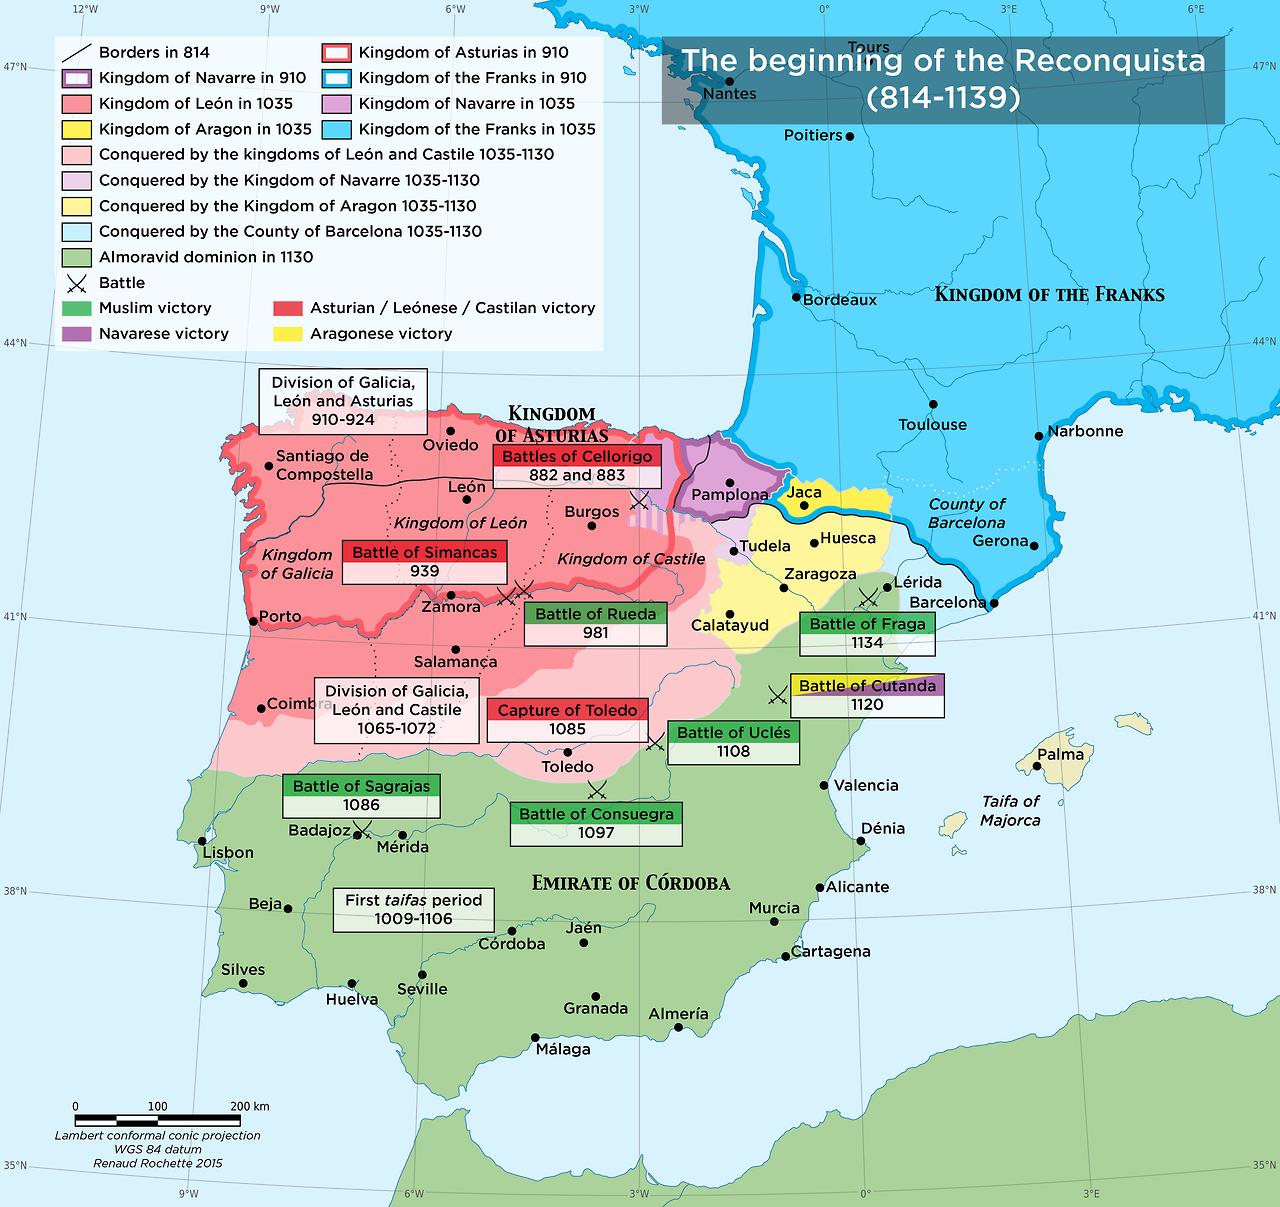 maps on the web the begin of the reconquista 814 1139